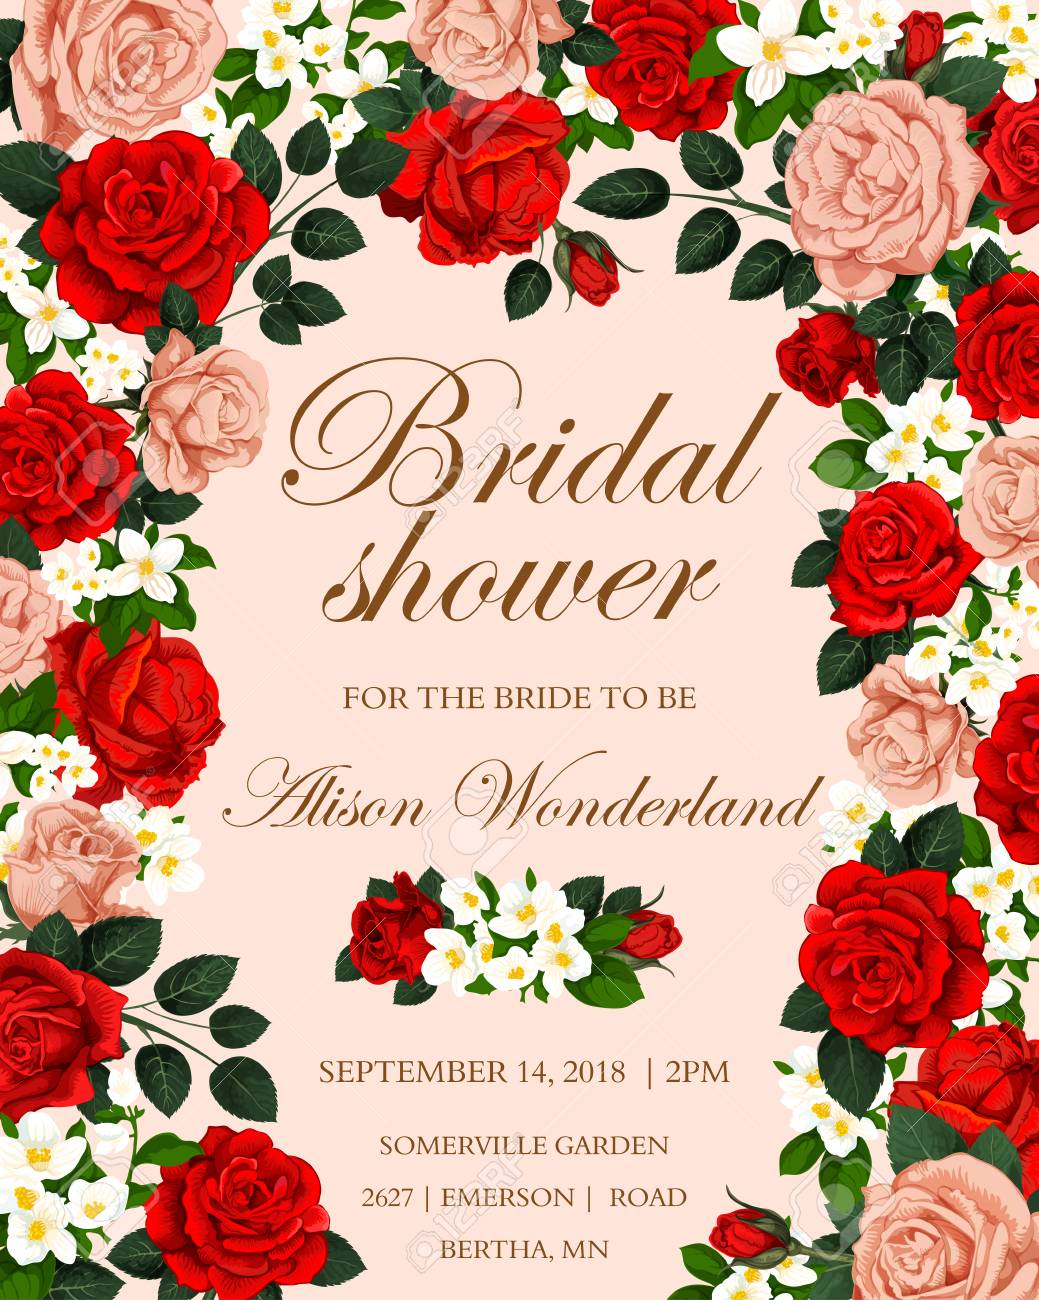 Wedding Rose Flower Banner For Bridal Shower Invitation Red Royalty Free Cliparts Vectors And Stock Illustration Image 105944444